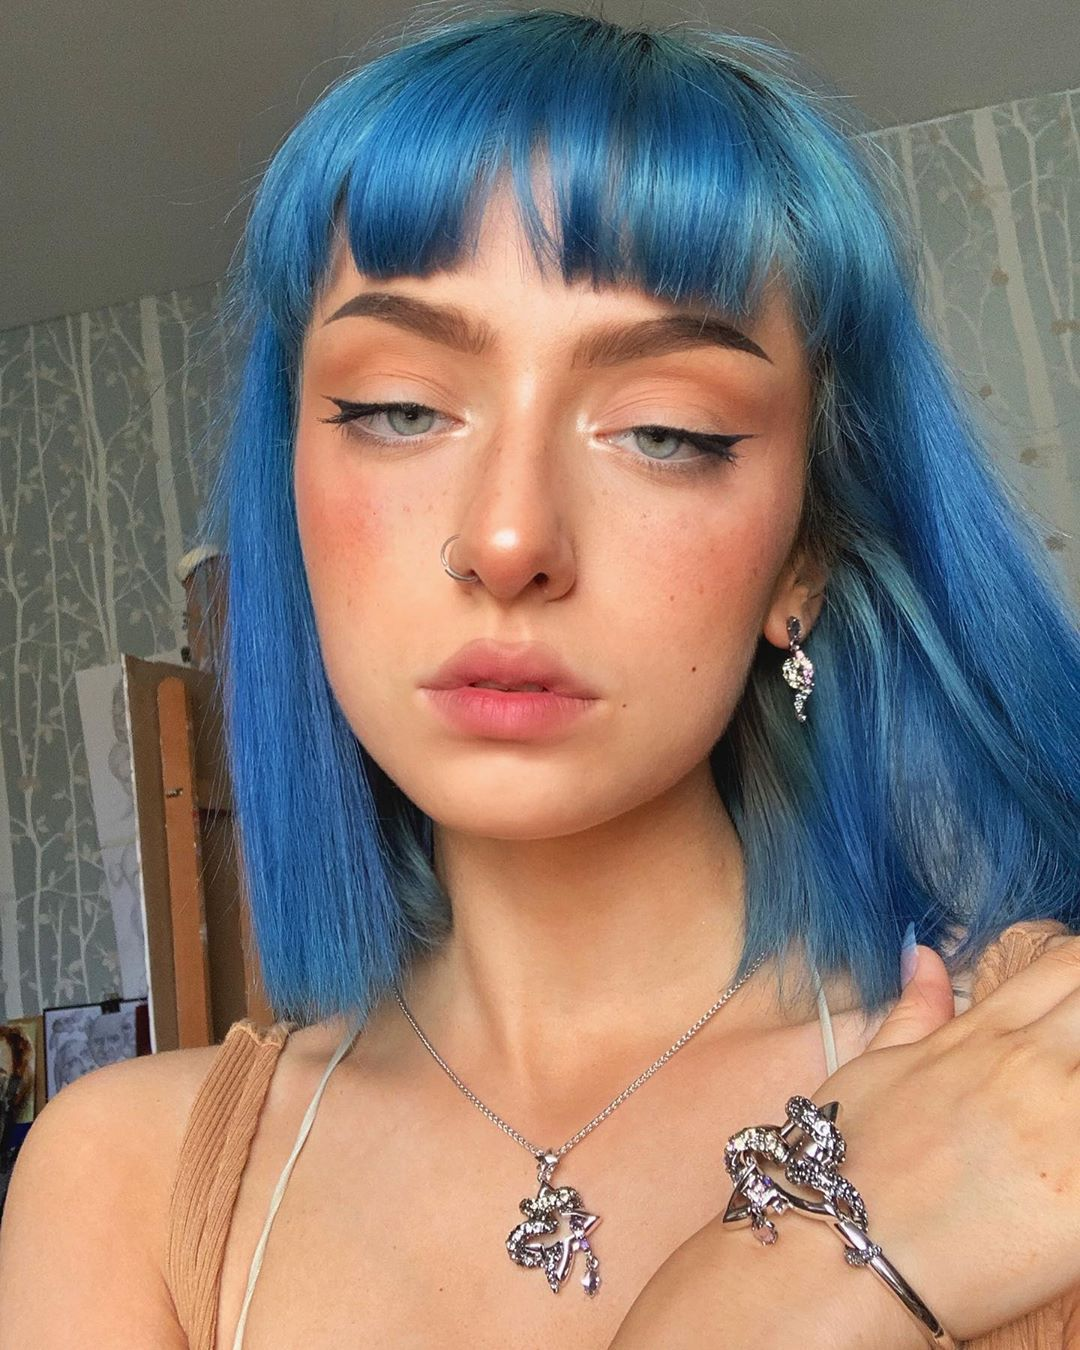 E V E On Instagram Feeling V Powerful In This Unique Jewellery Set From Allweareuk Awastyle Ad Aesthetic Hair Hair Inspo Color Short Blue Hair